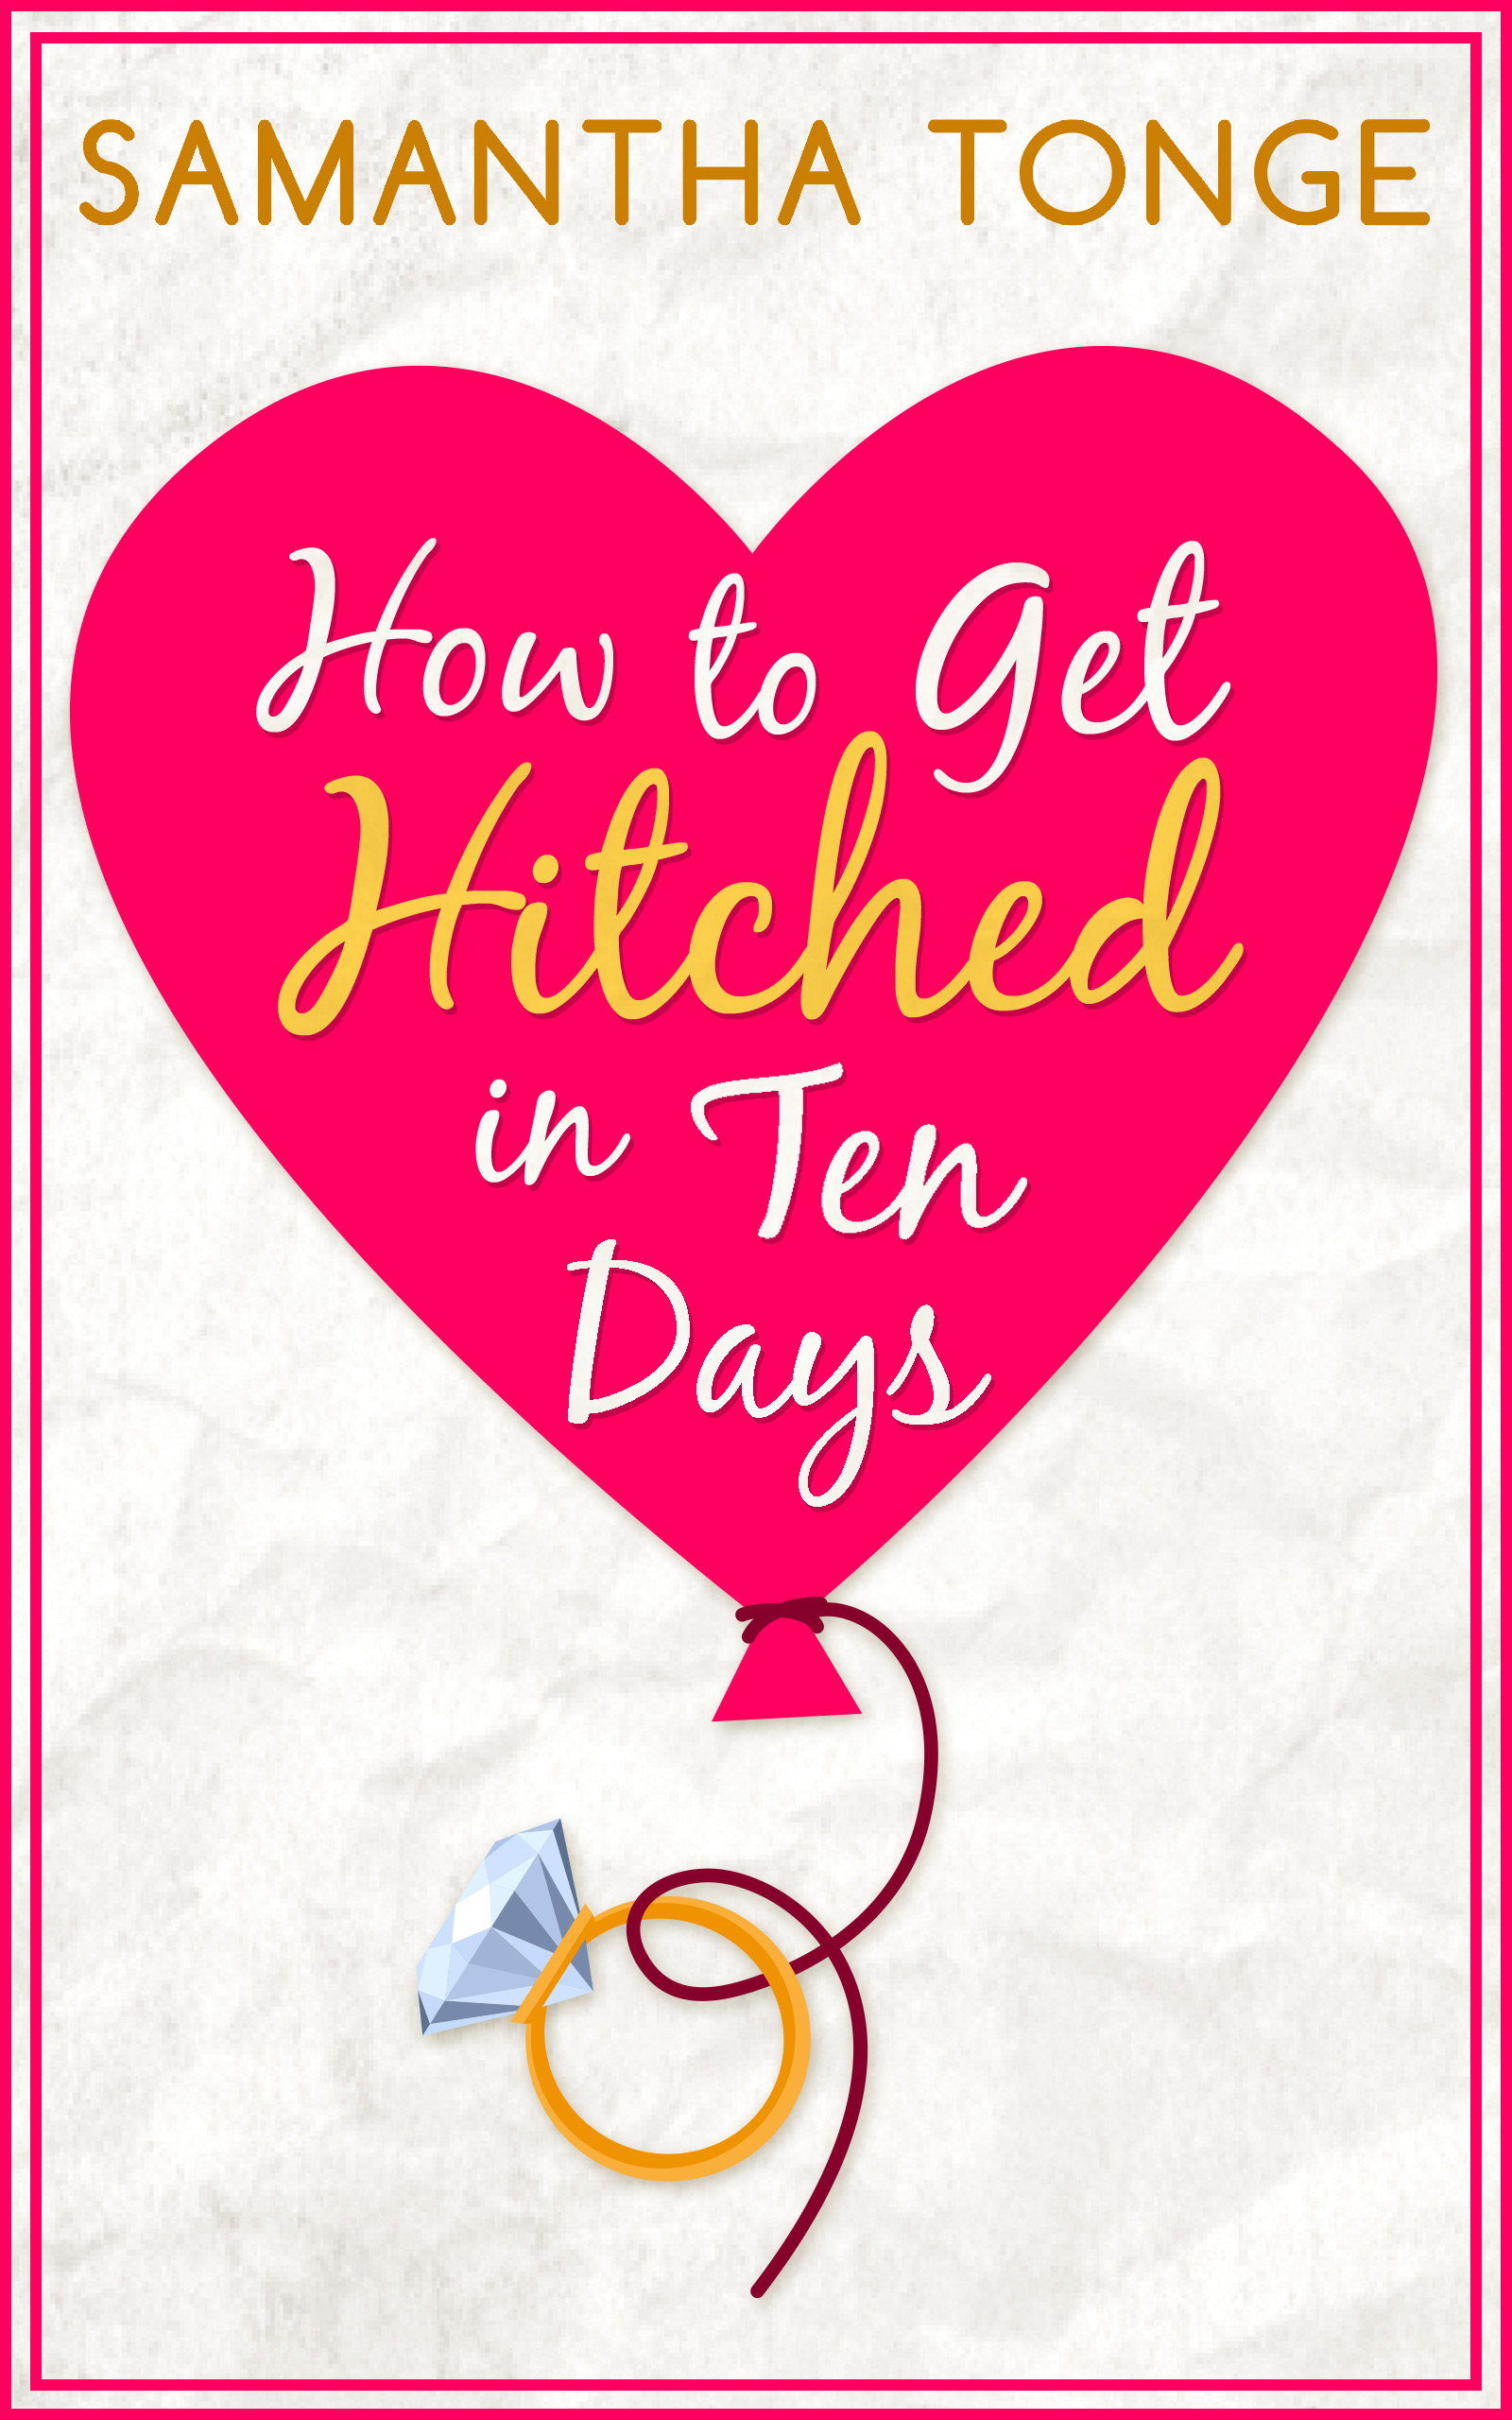 How to Get Hitched in Ten Days